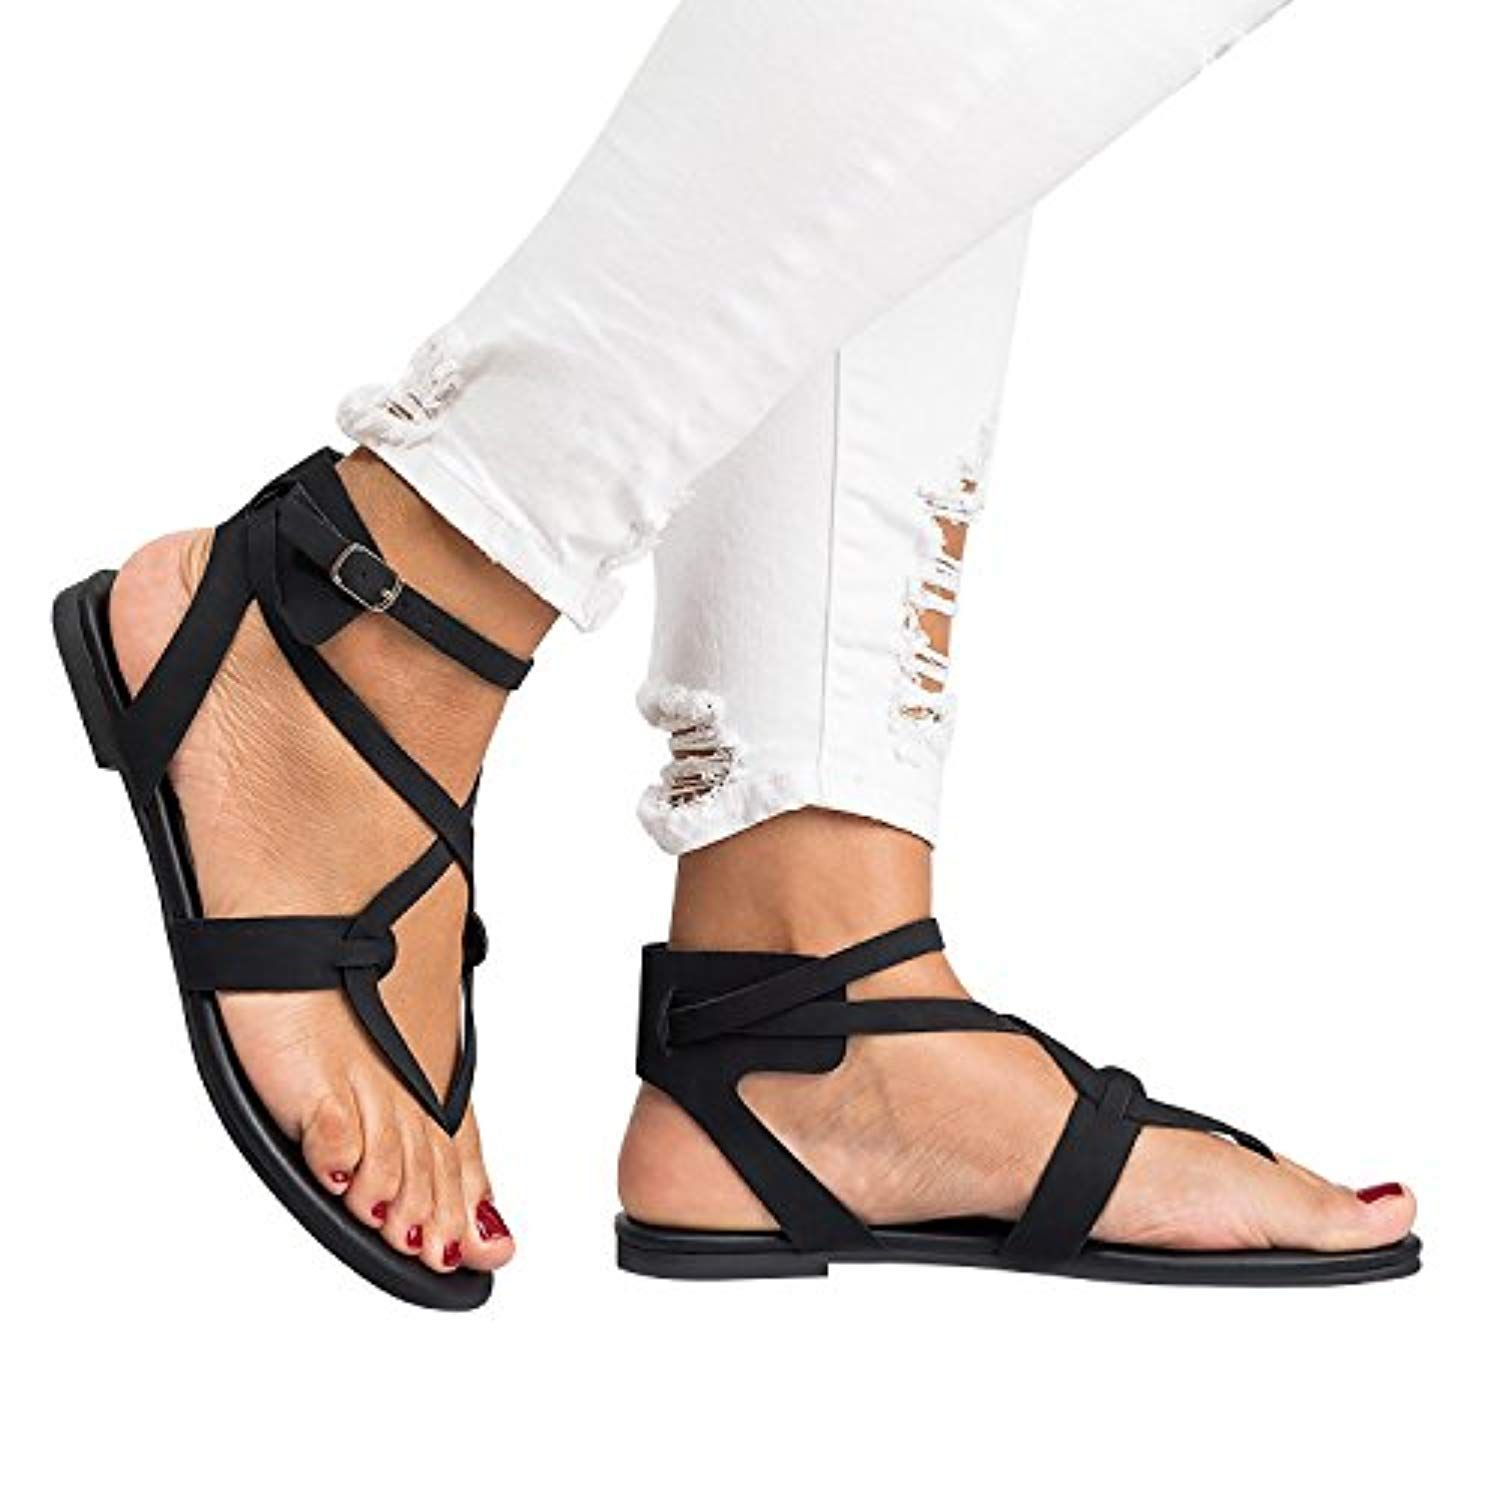 192edcf53b1 Womens Flip Flops Buckle Strap Summer Beach Flat Gladiator Sandals  Crisscross with Heels    Click image for more details. (This is an  affiliate link)   ...